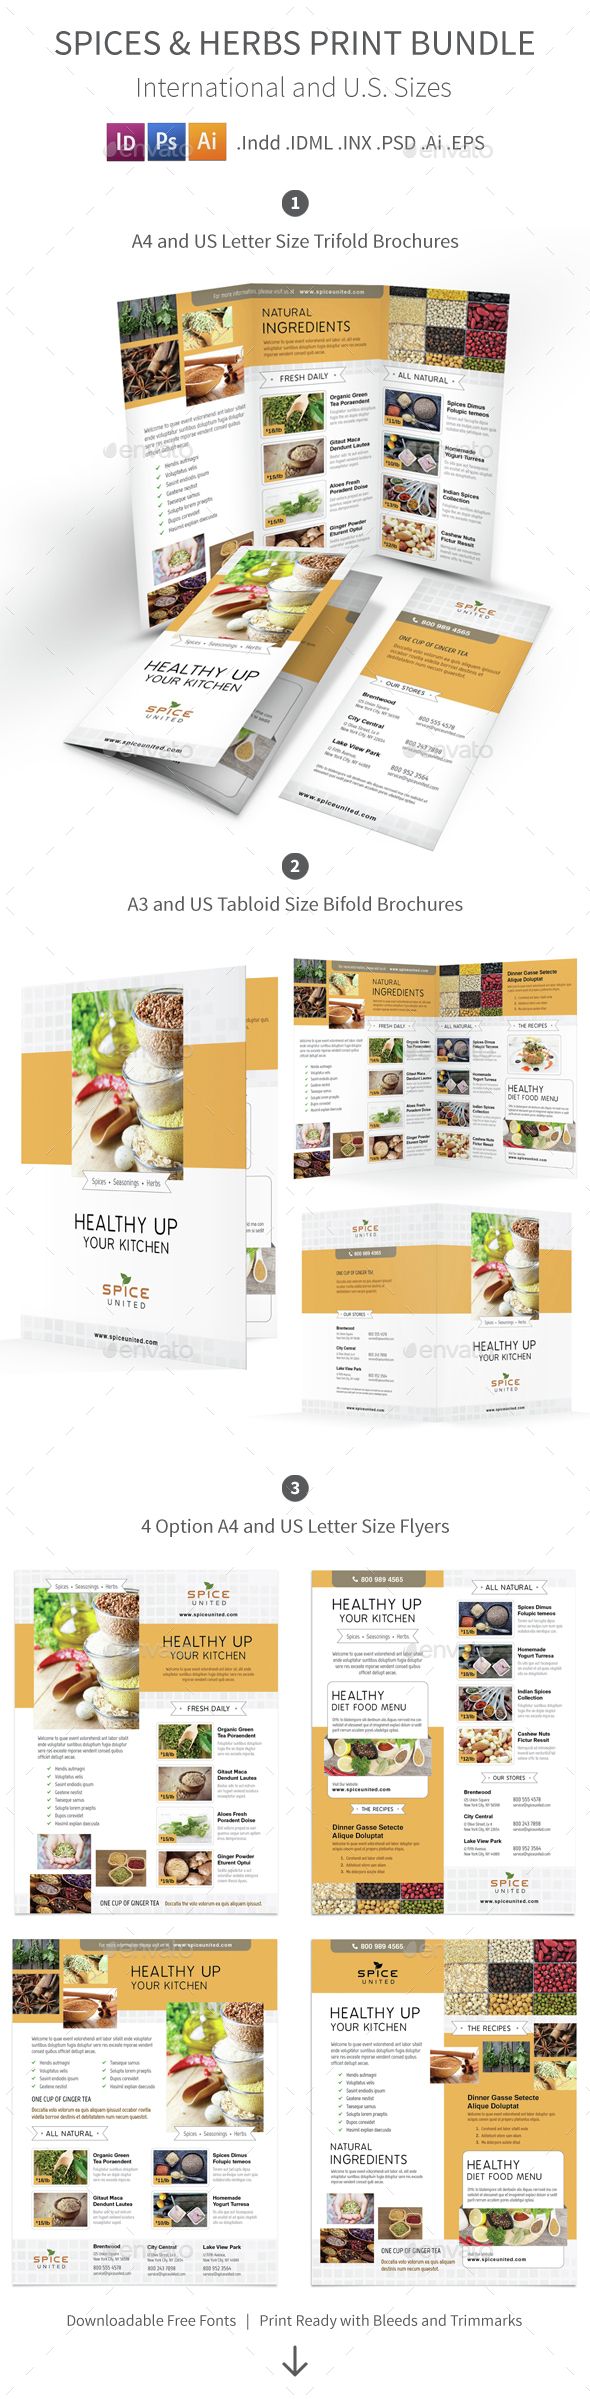 Spices and Herbs Print Bundle - Informational Brochures